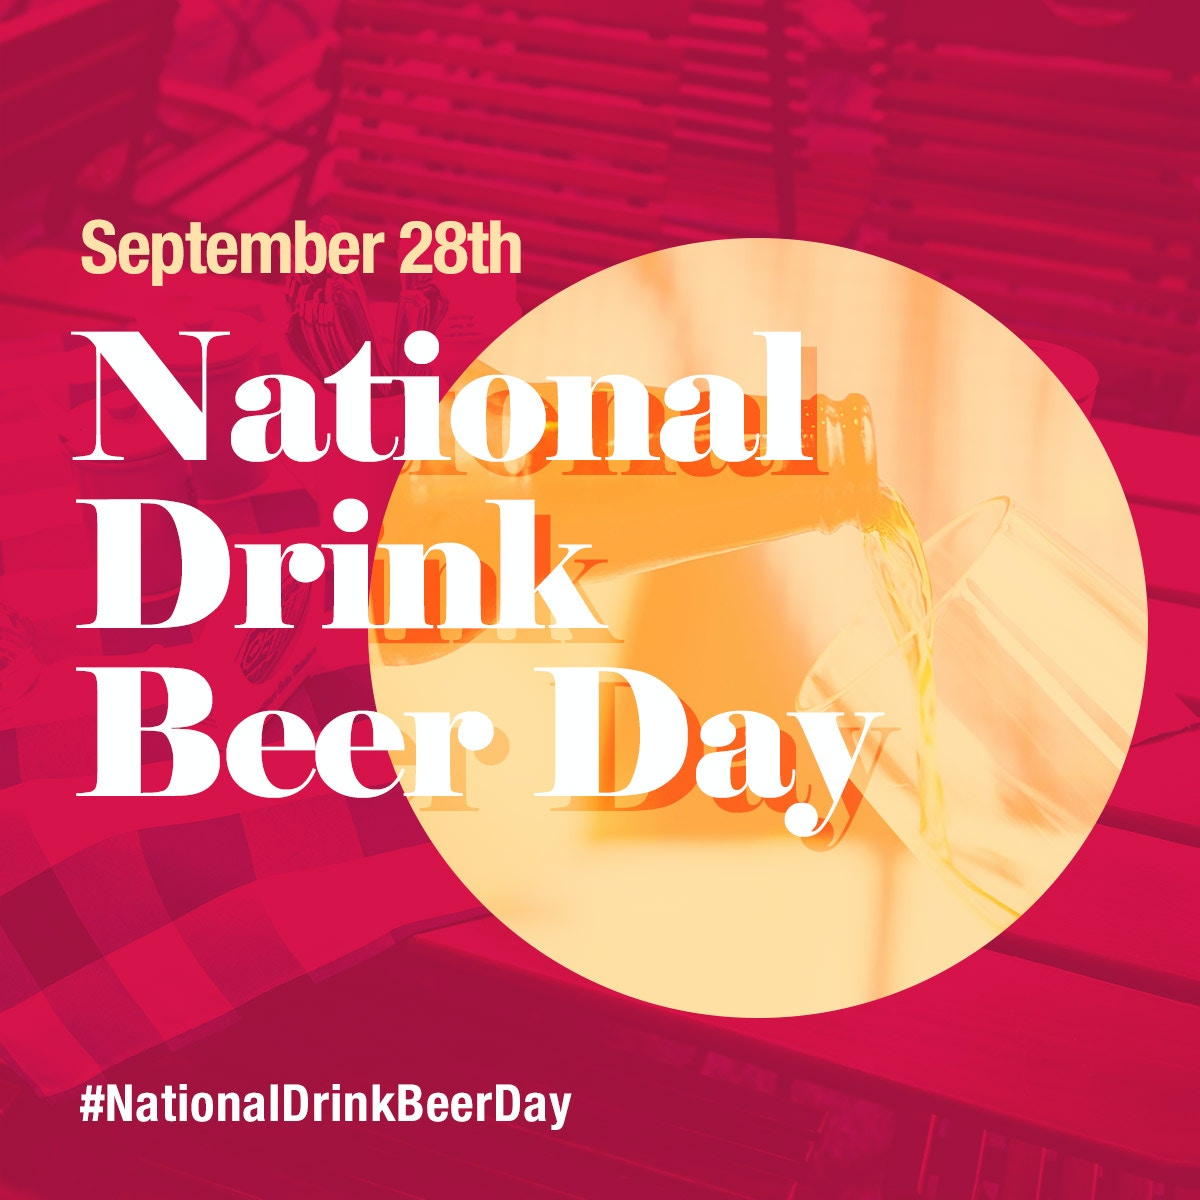 Here's a day that I know some people can stand behind. Lol I'm not much of a beer fan but cheers! 🍻  Do you like beer? What kind?  #nationaldrinkabeerday #drink #bemerry #cheers #national #beer #toast #fan #Flavor #tap #bottle #can #september #haveadrink #drinktothat #relax https://t.co/qC3bosSCpr